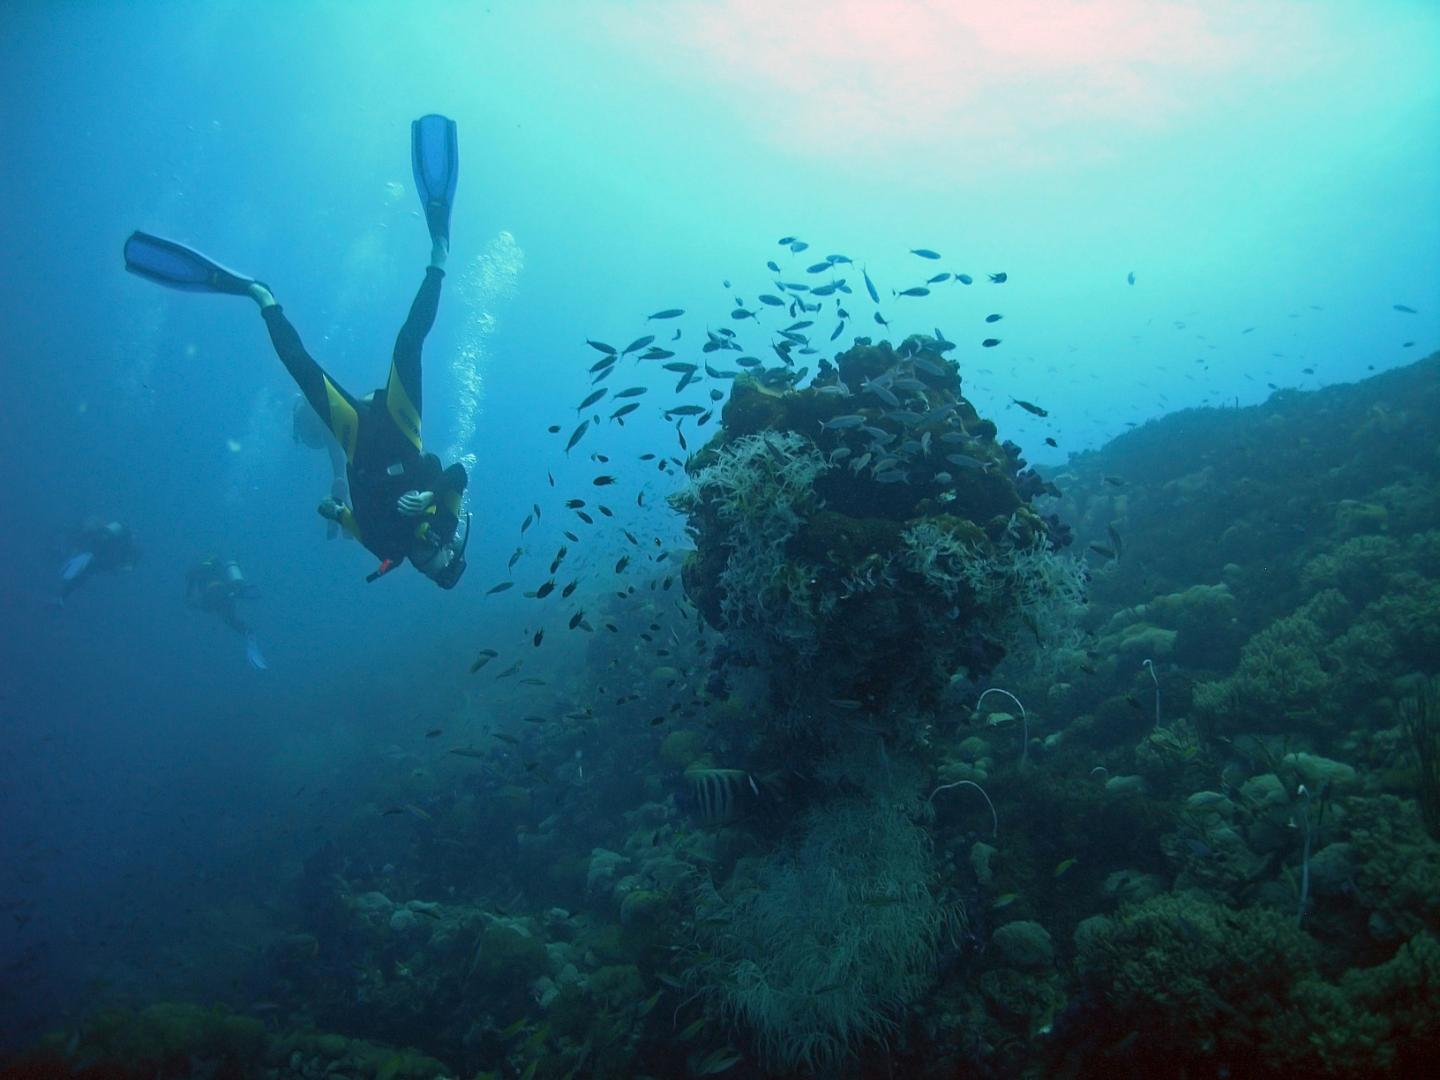 Australia's Great Barrier Reef Is One of the World's Most Popular Tourist Sites